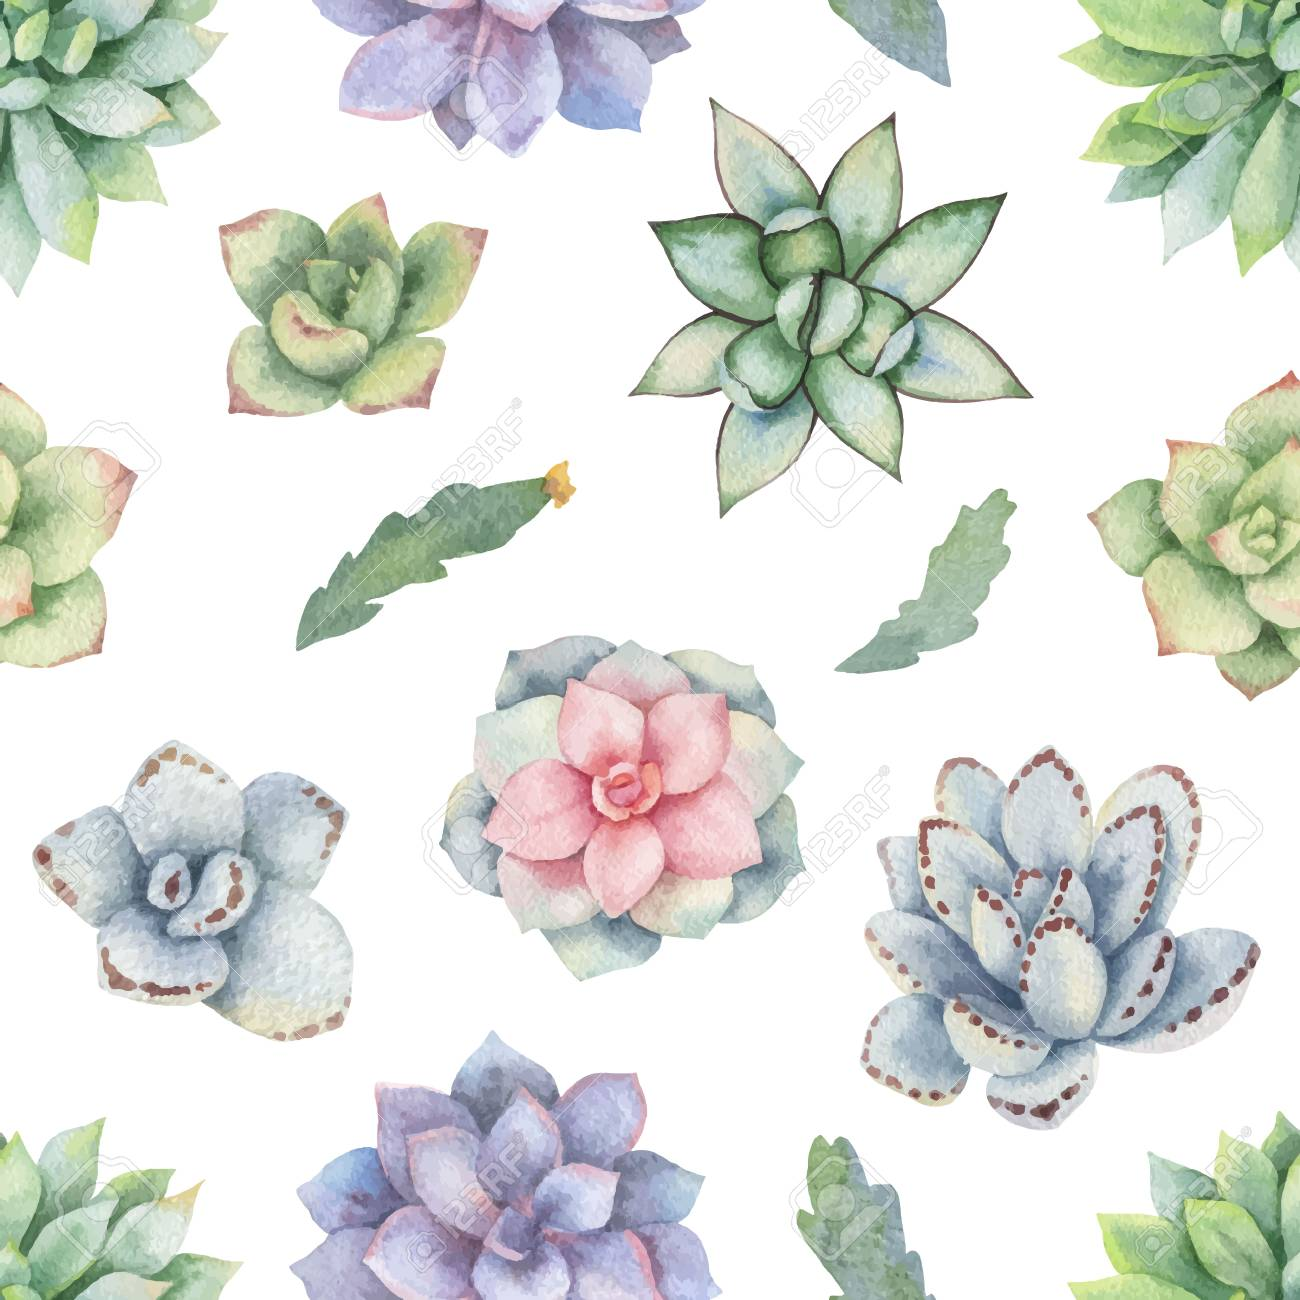 Watercolor Vector Seamless Pattern Of Cacti And Succulent Plants Royalty Free Cliparts Vectors And Stock Illustration Image 96326993